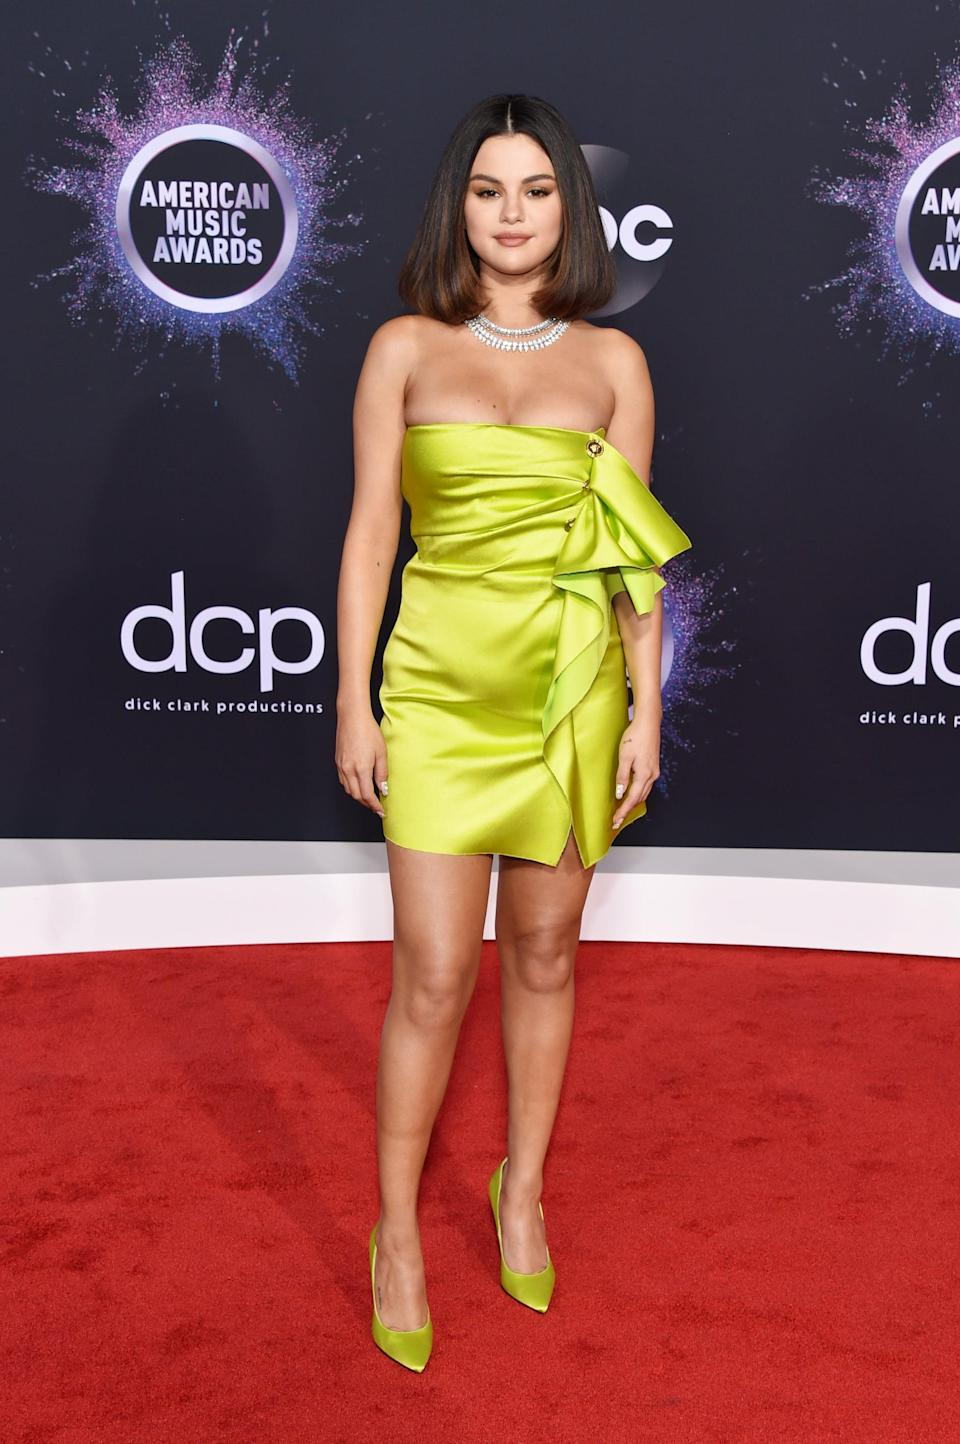 """<p>Selena wore a <a href=""""https://www.popsugar.com/fashion/selena-gomez-versace-dress-at-the-american-music-awards-2019-46941093"""" class=""""link rapid-noclick-resp"""" rel=""""nofollow noopener"""" target=""""_blank"""" data-ylk=""""slk:Versace minidress"""">Versace minidress</a> with Roberto Coin jewels and matching Versace pumps to the 2019 American Music Awards in LA.</p>"""